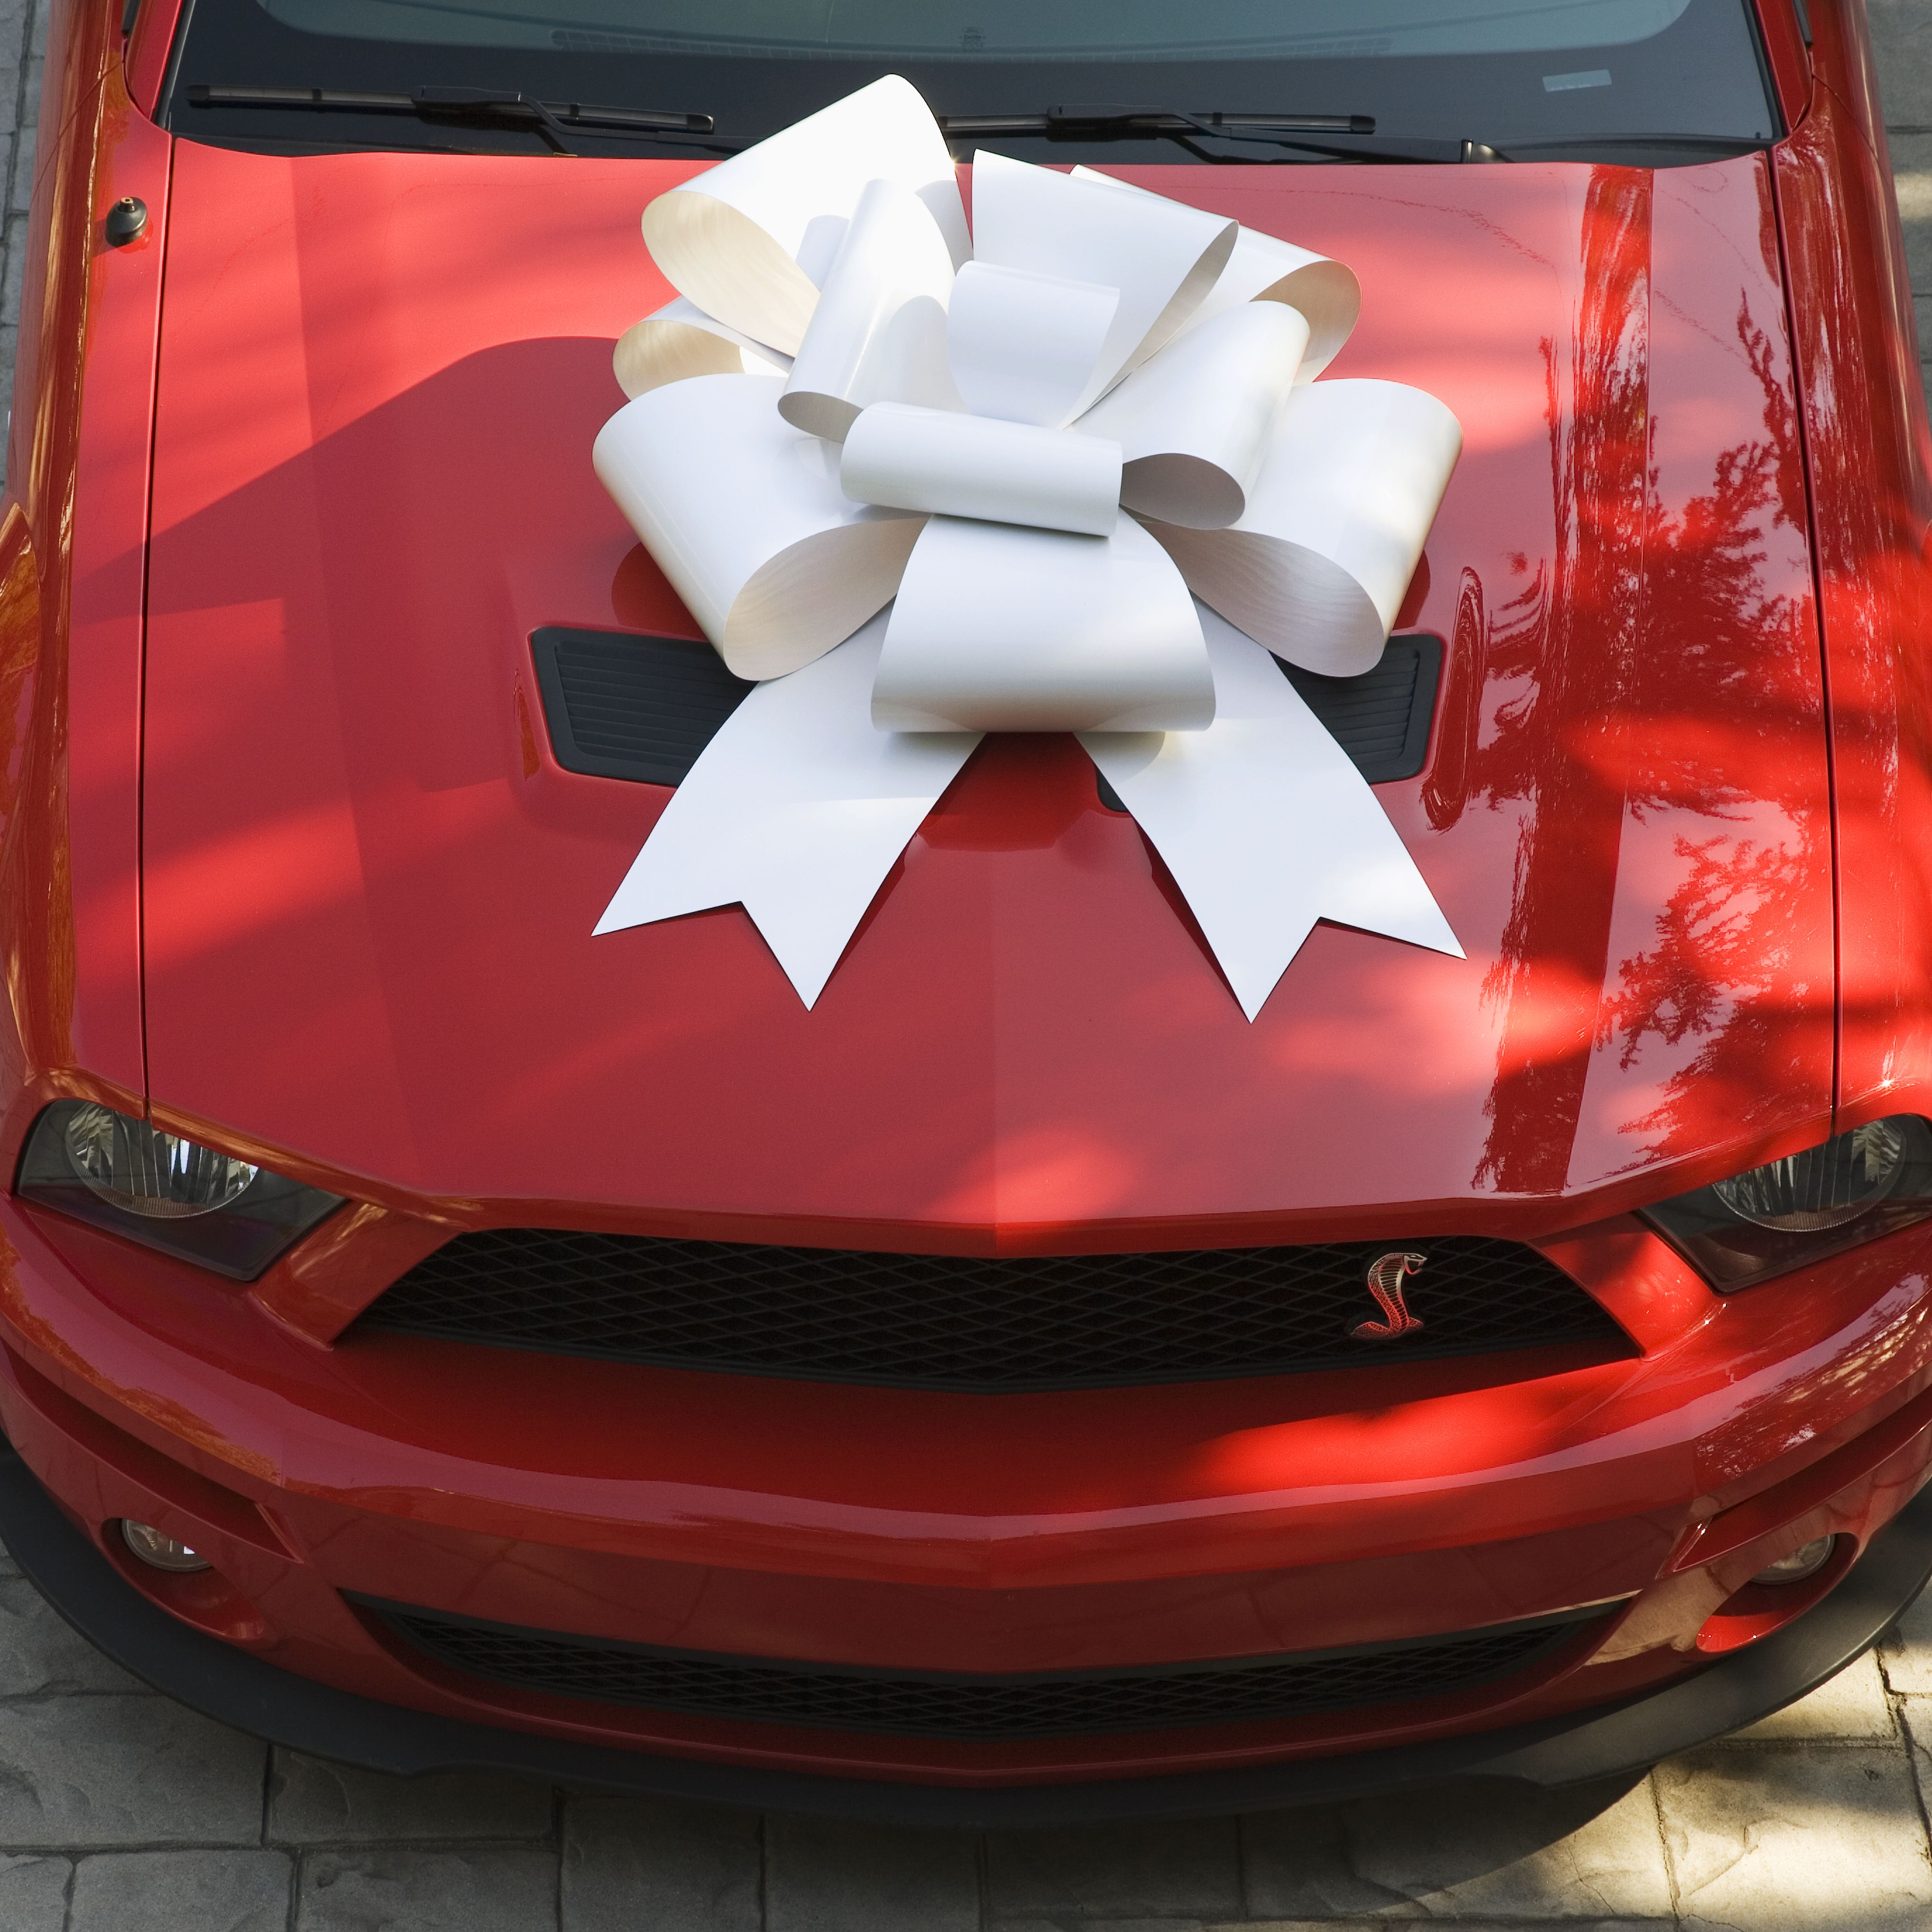 Car Sweepstakes: Free Chances to Win a New Vehicle